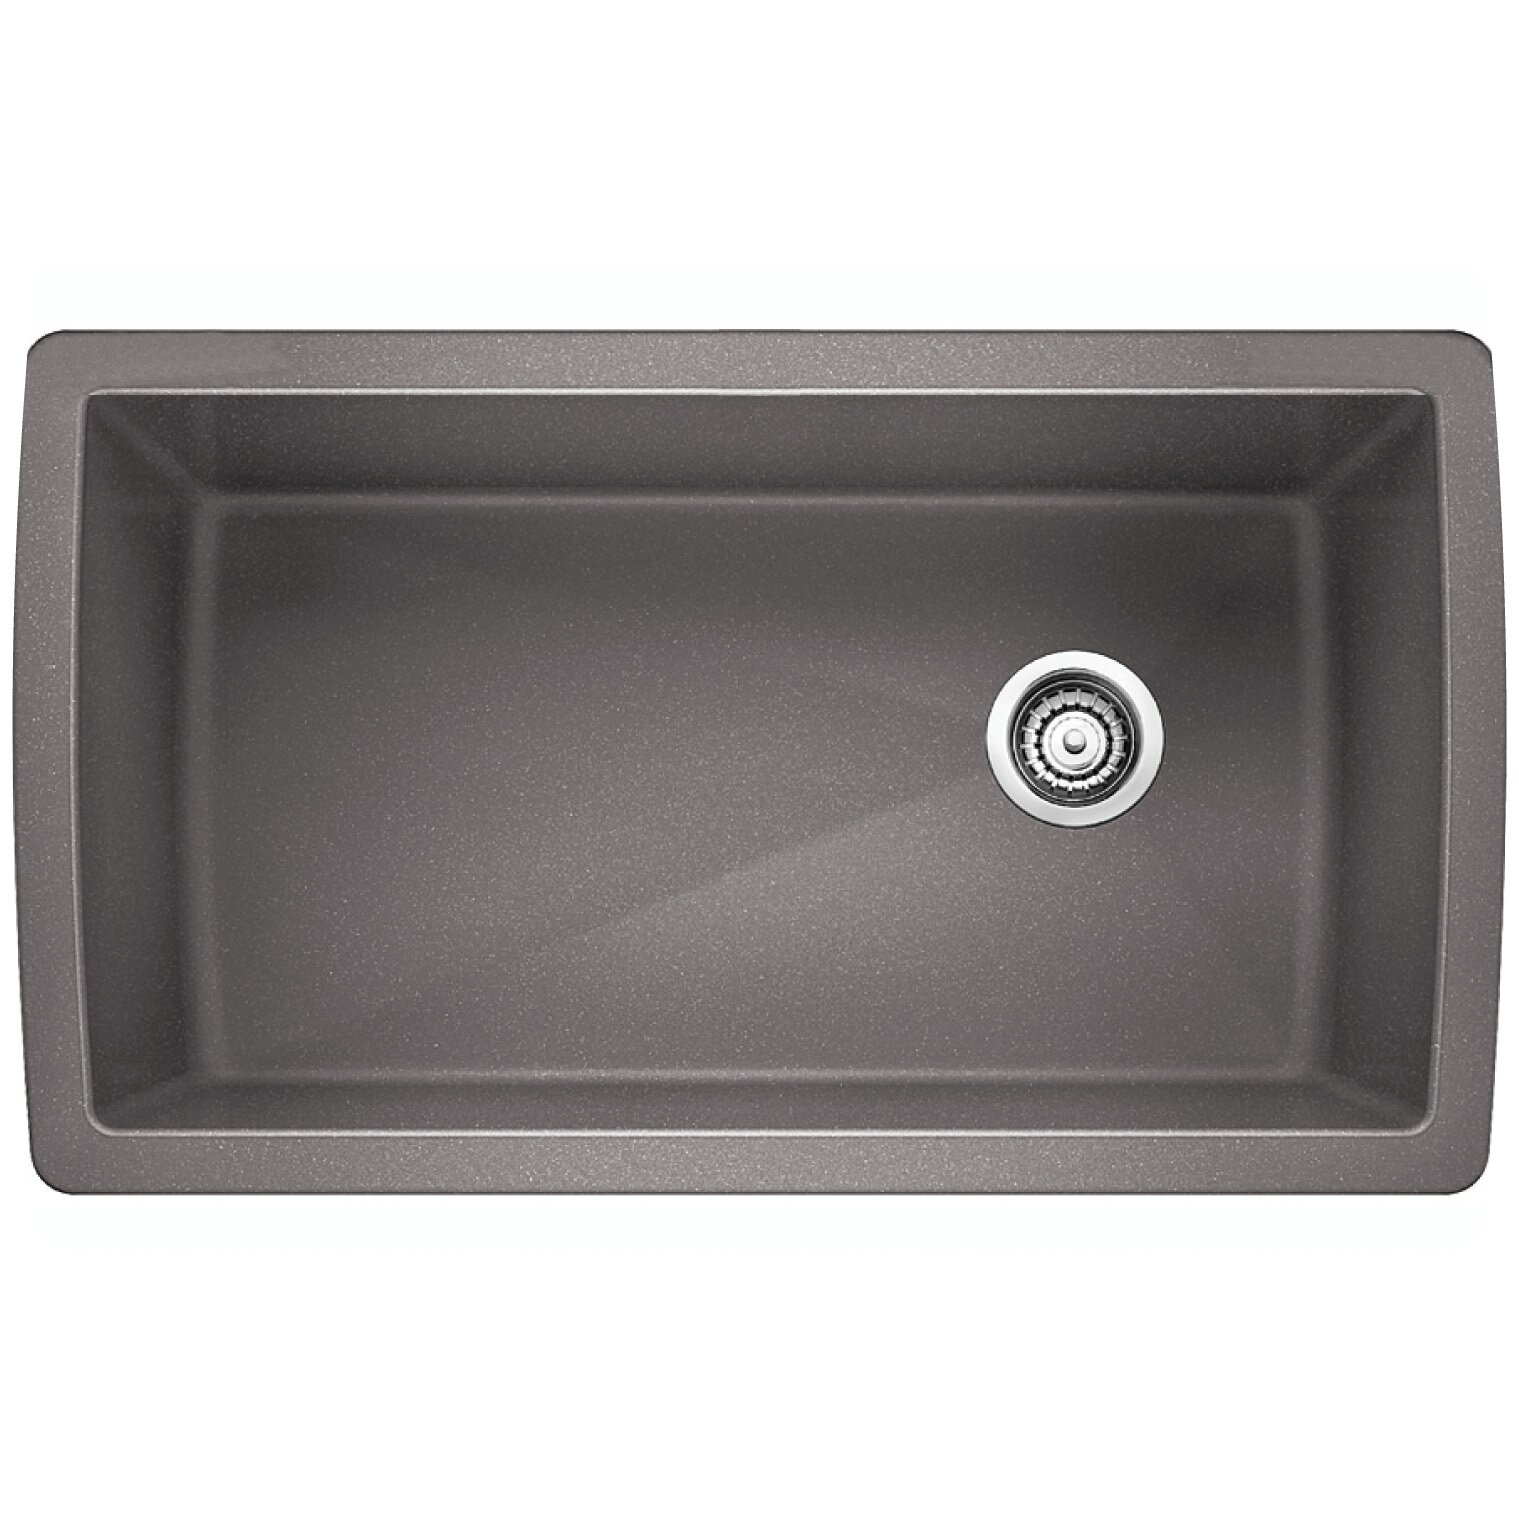 Kitchen Sinks Granite Composite Granite Composite Kitchen Sinks Youll Love Wayfair